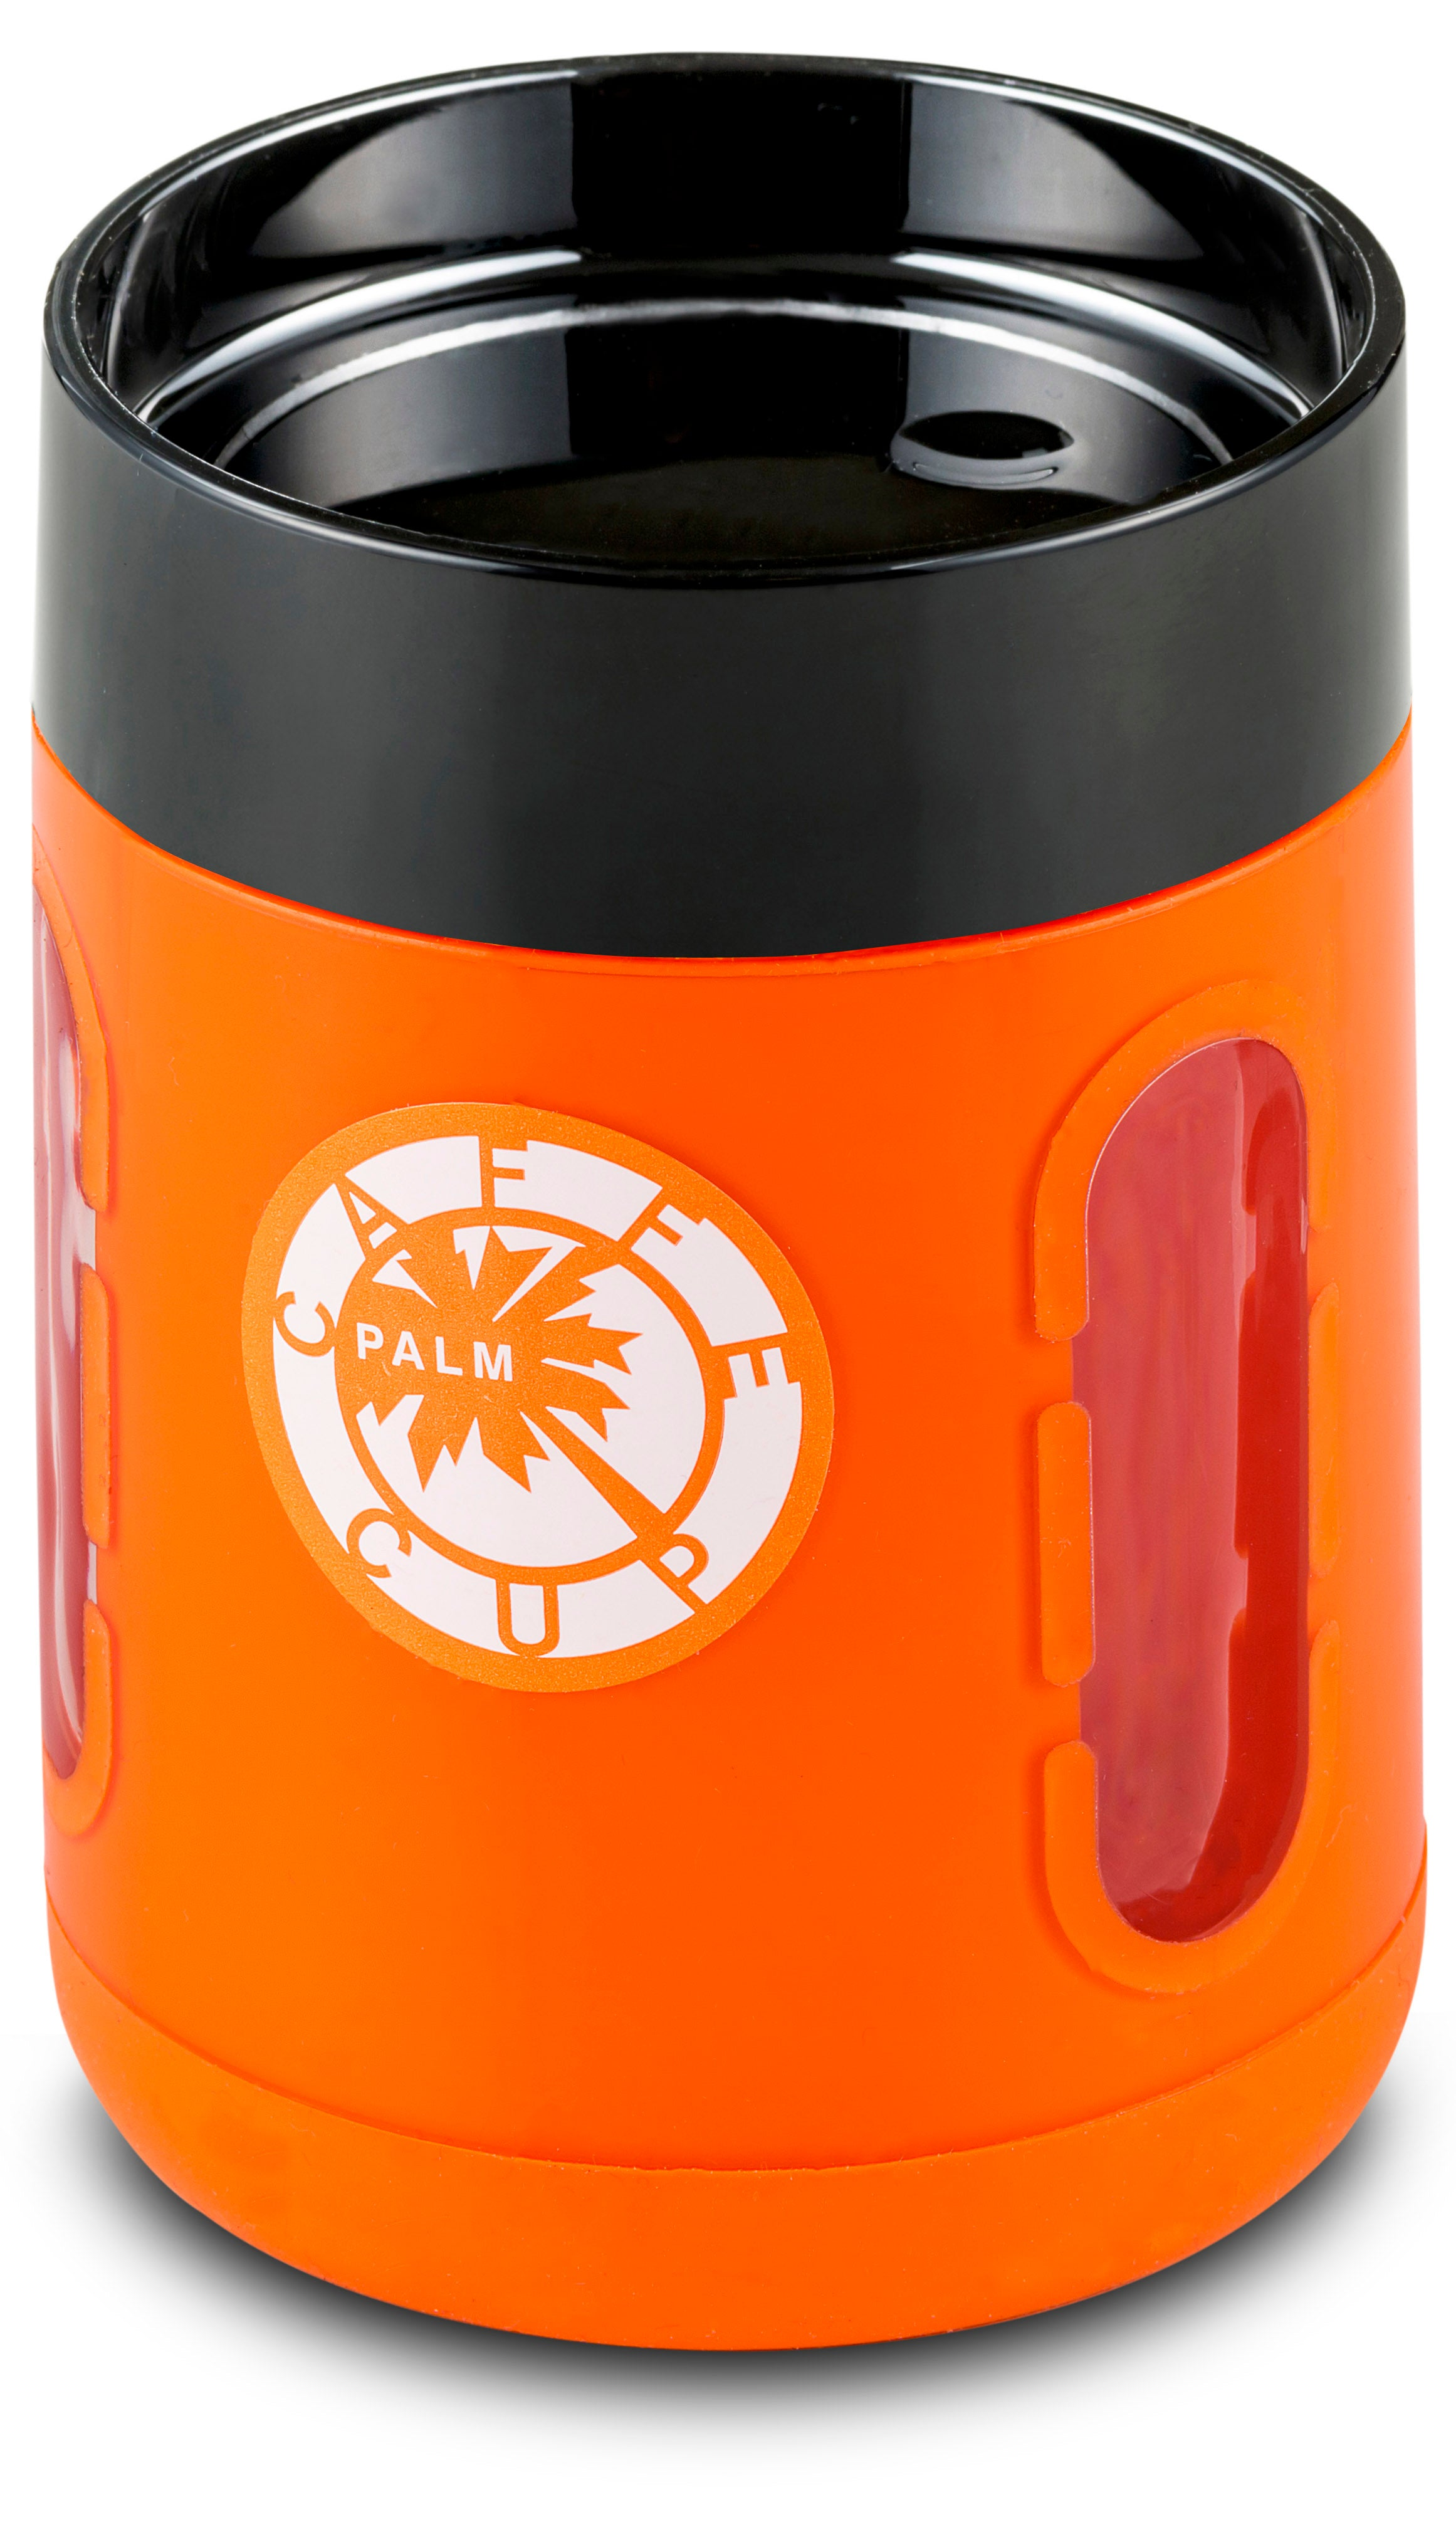 Palm Caffe Cup - Orange/Black